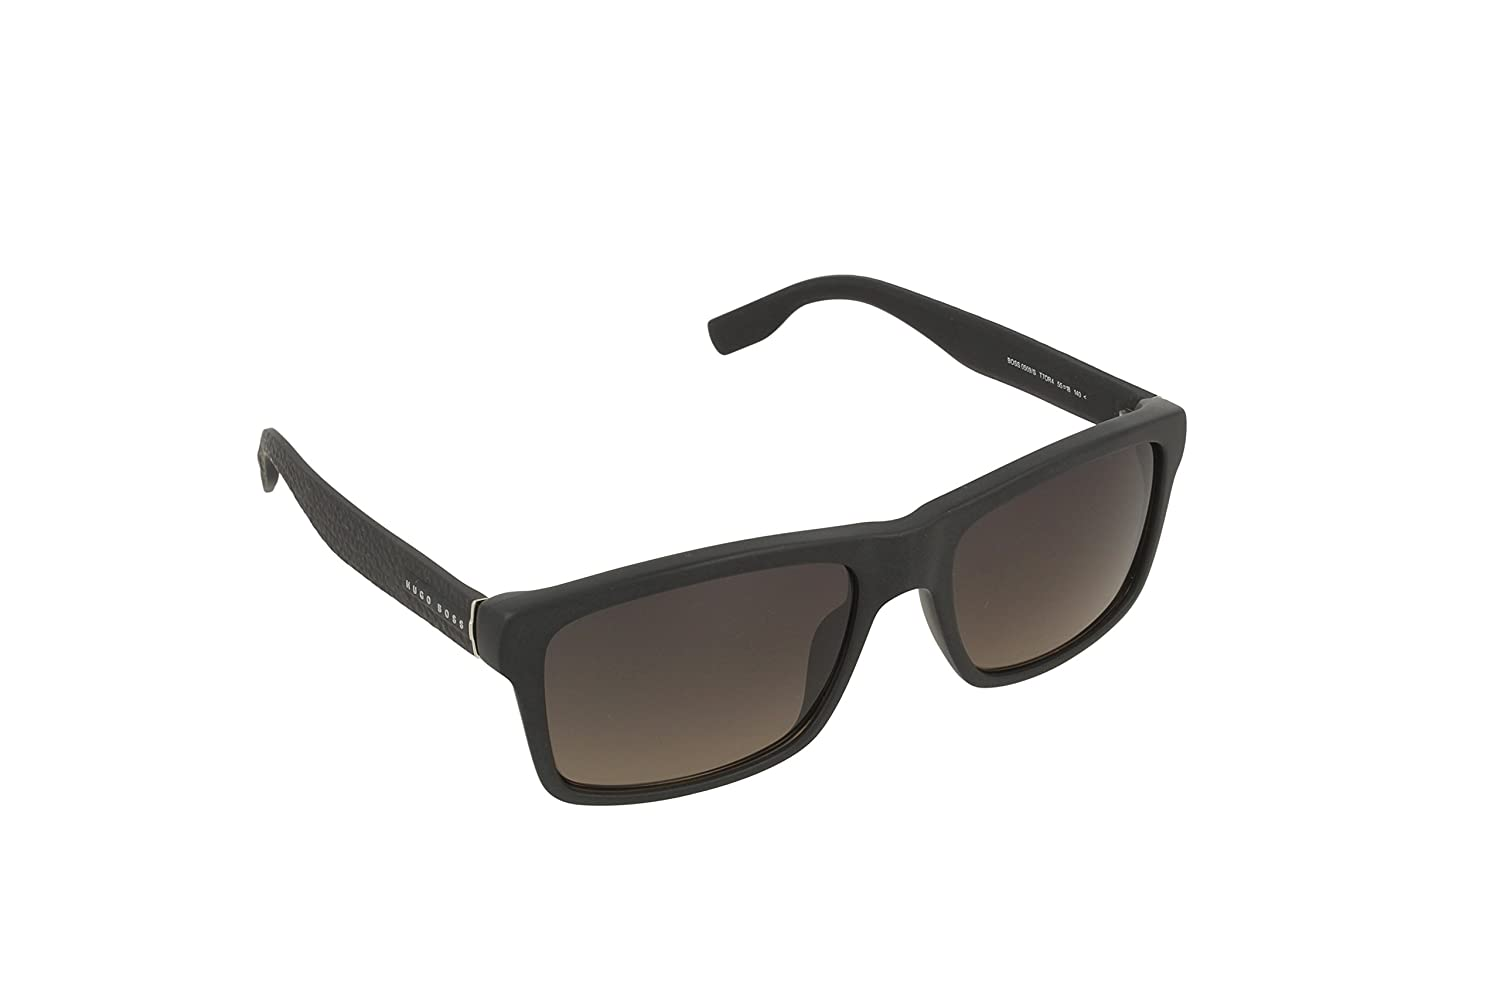 5caa12c06099 Amazon.com: Hugo Boss 0509S T7O Matte Black 0509S Square Sunglasses Lens  Category 3 Size 55: Clothing